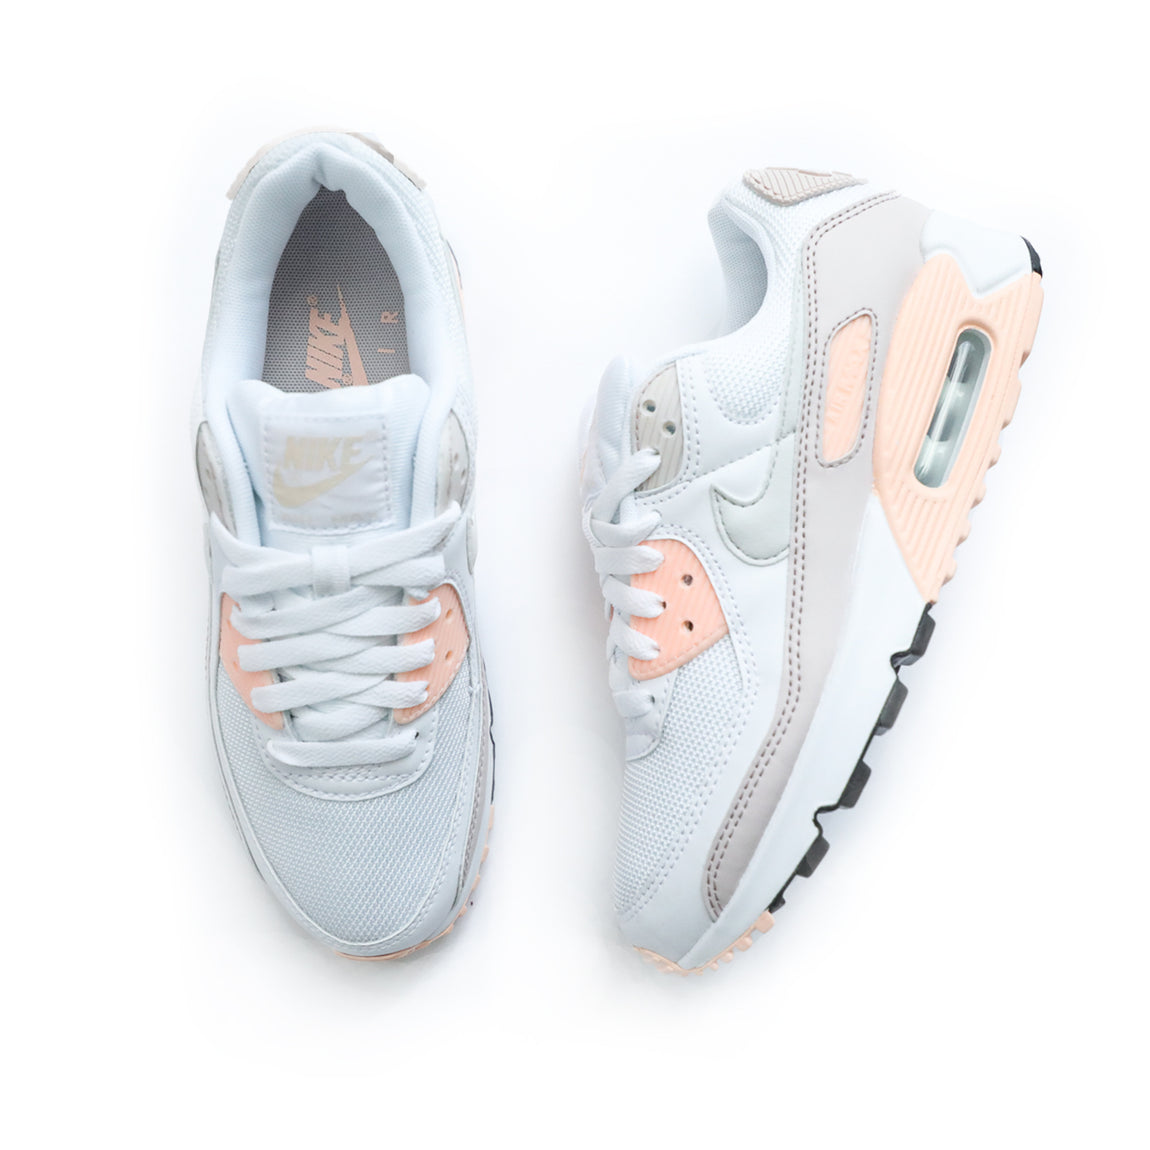 Nike Women's Air Max 90 (White/Platinum Tint/Barely Rose) - Nike Women's Air Max 90 (White/Platinum Tint/Barely Rose) -